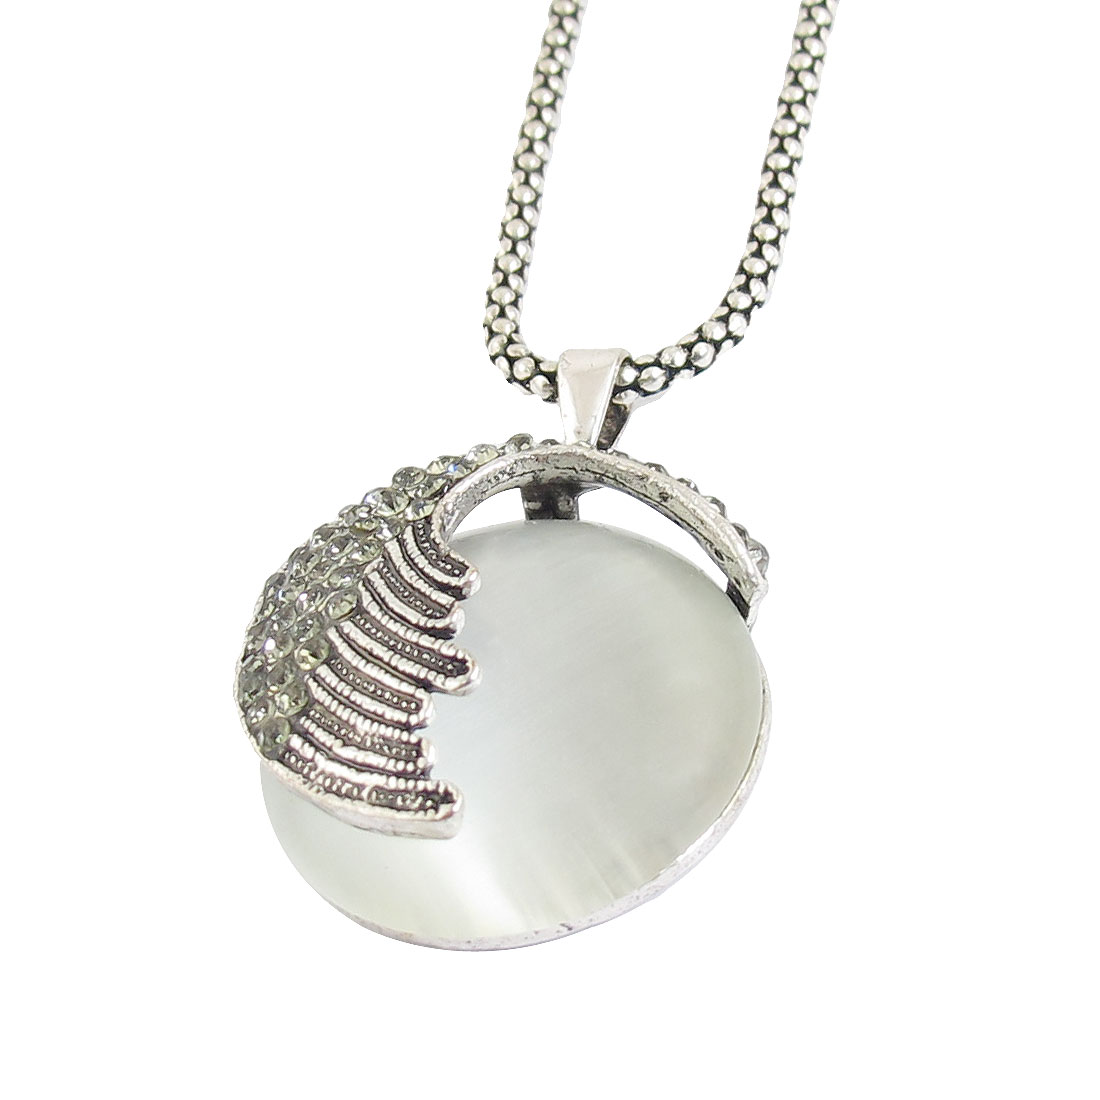 Round Faux Cat Eye Stone Accent Pendant Necklace Silver Tone for Ladies